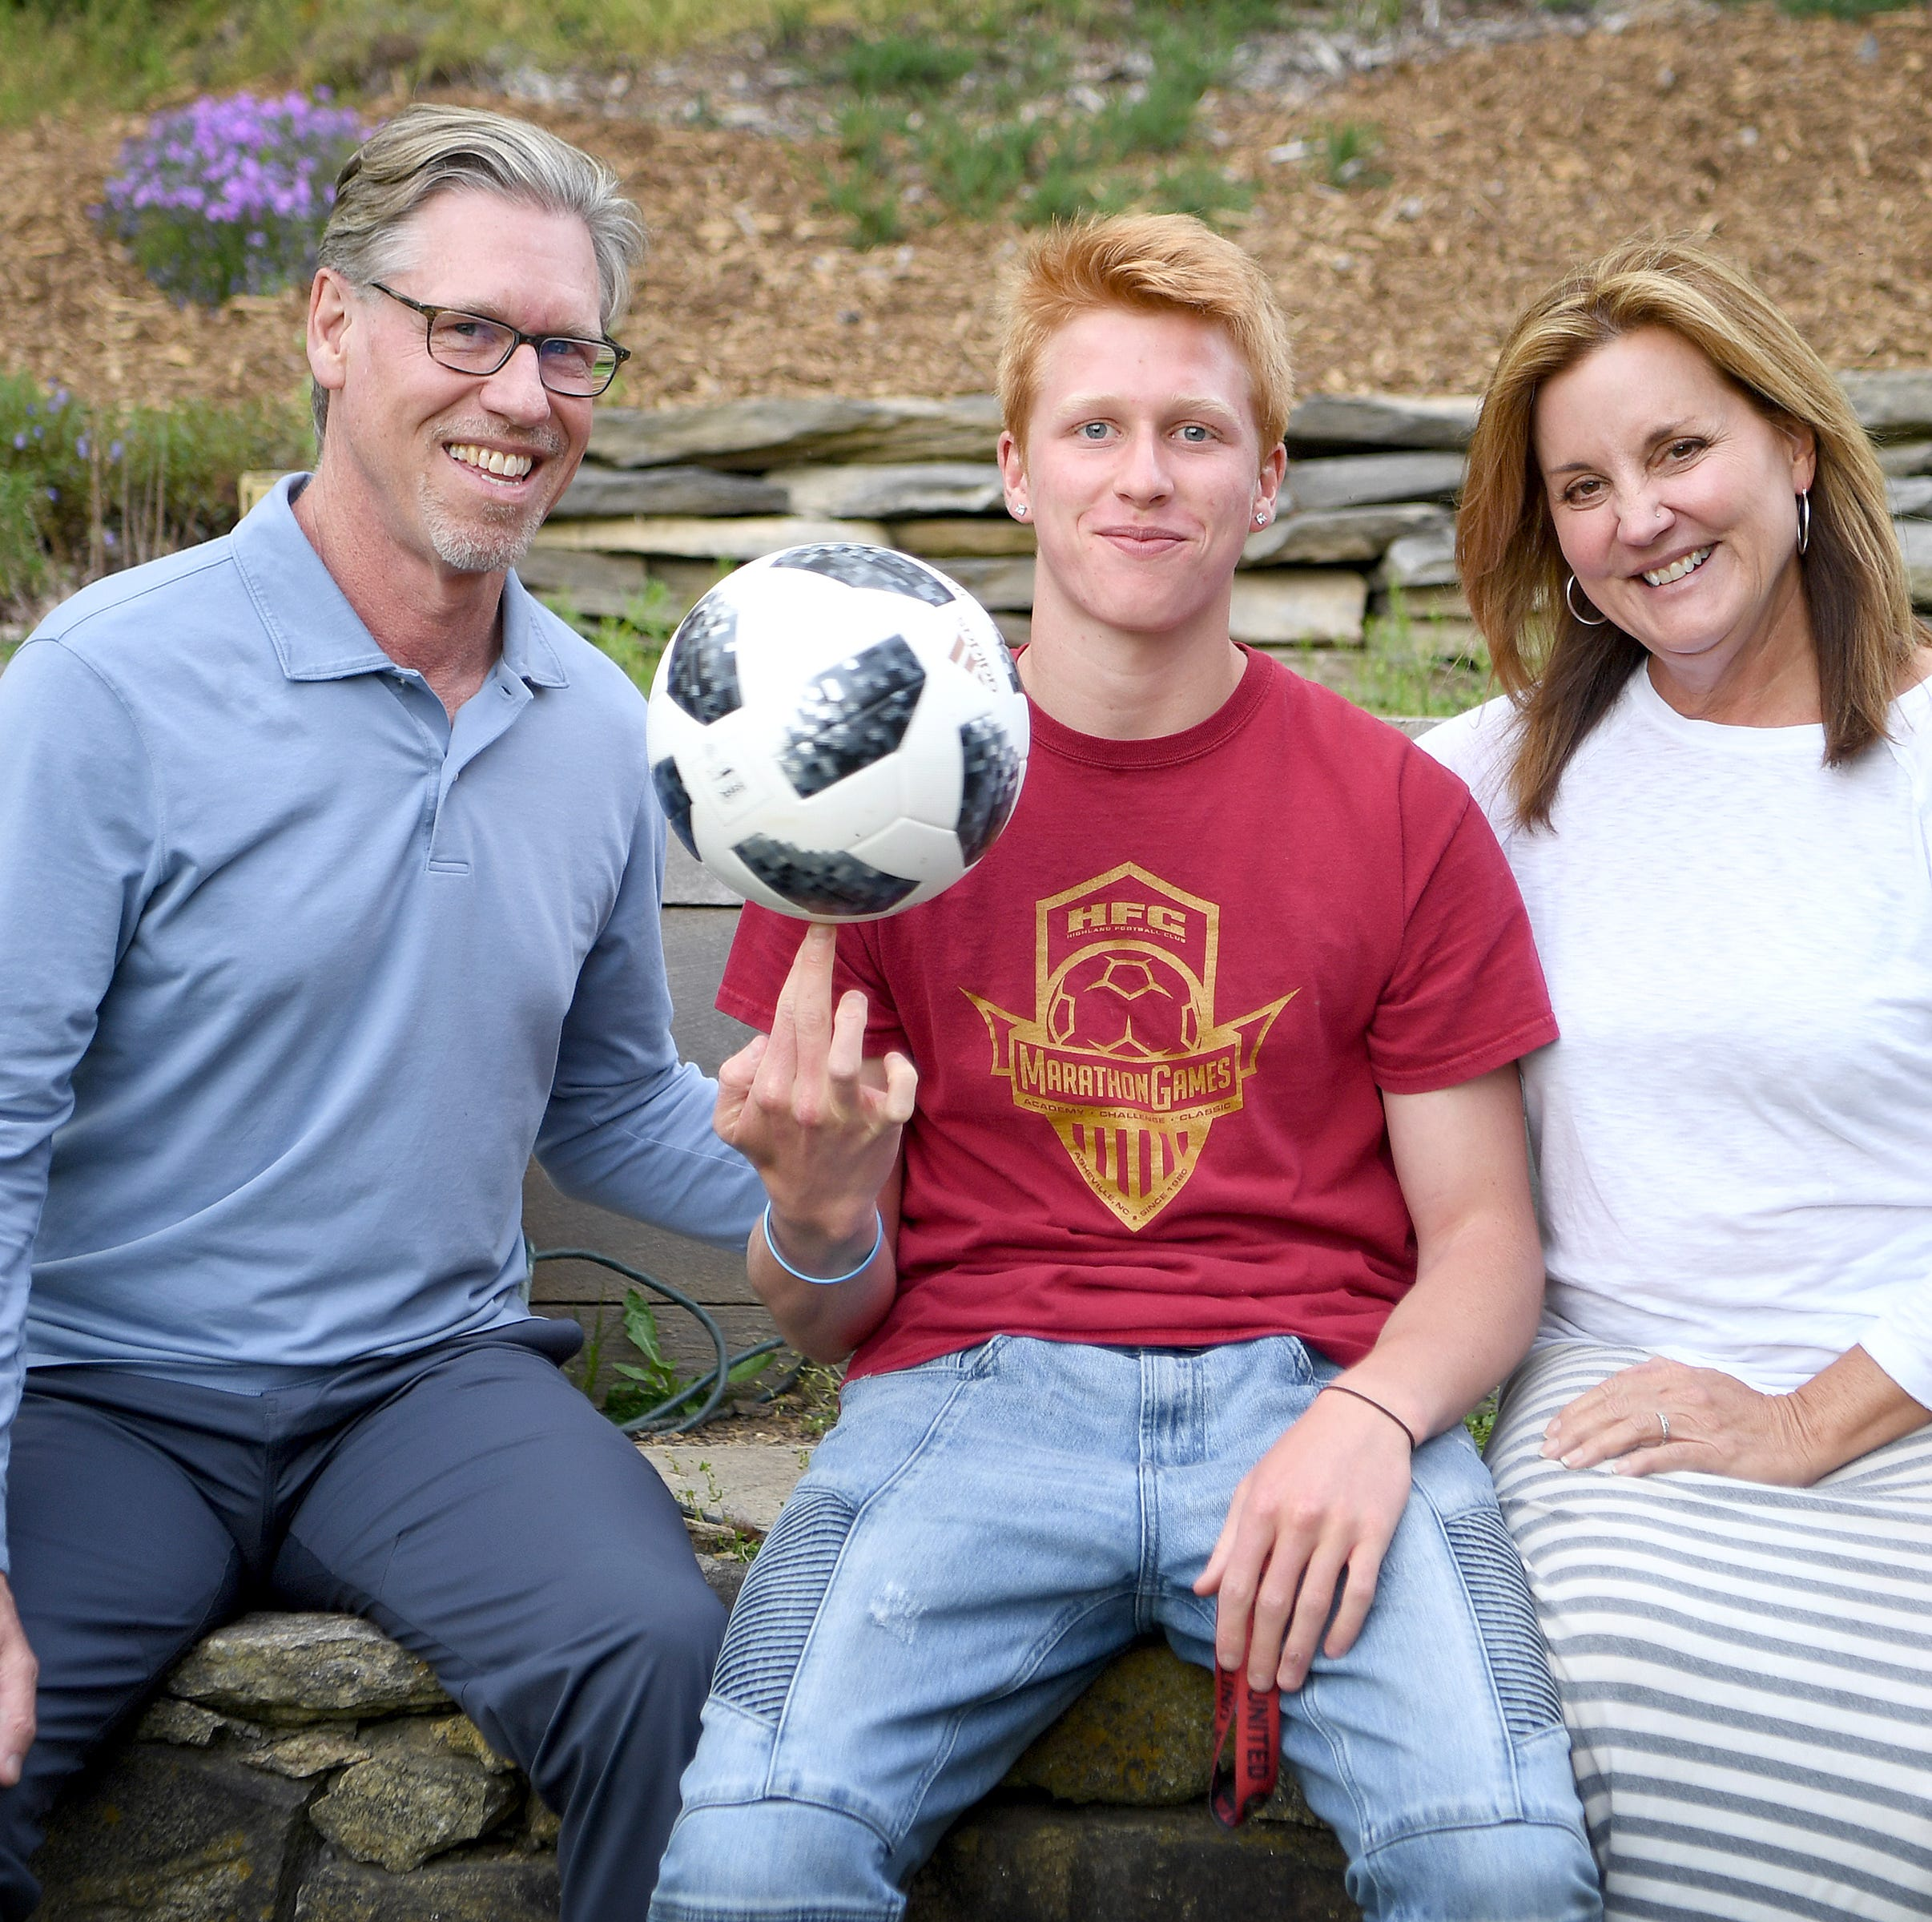 Asheville family begins professional soccer dream together